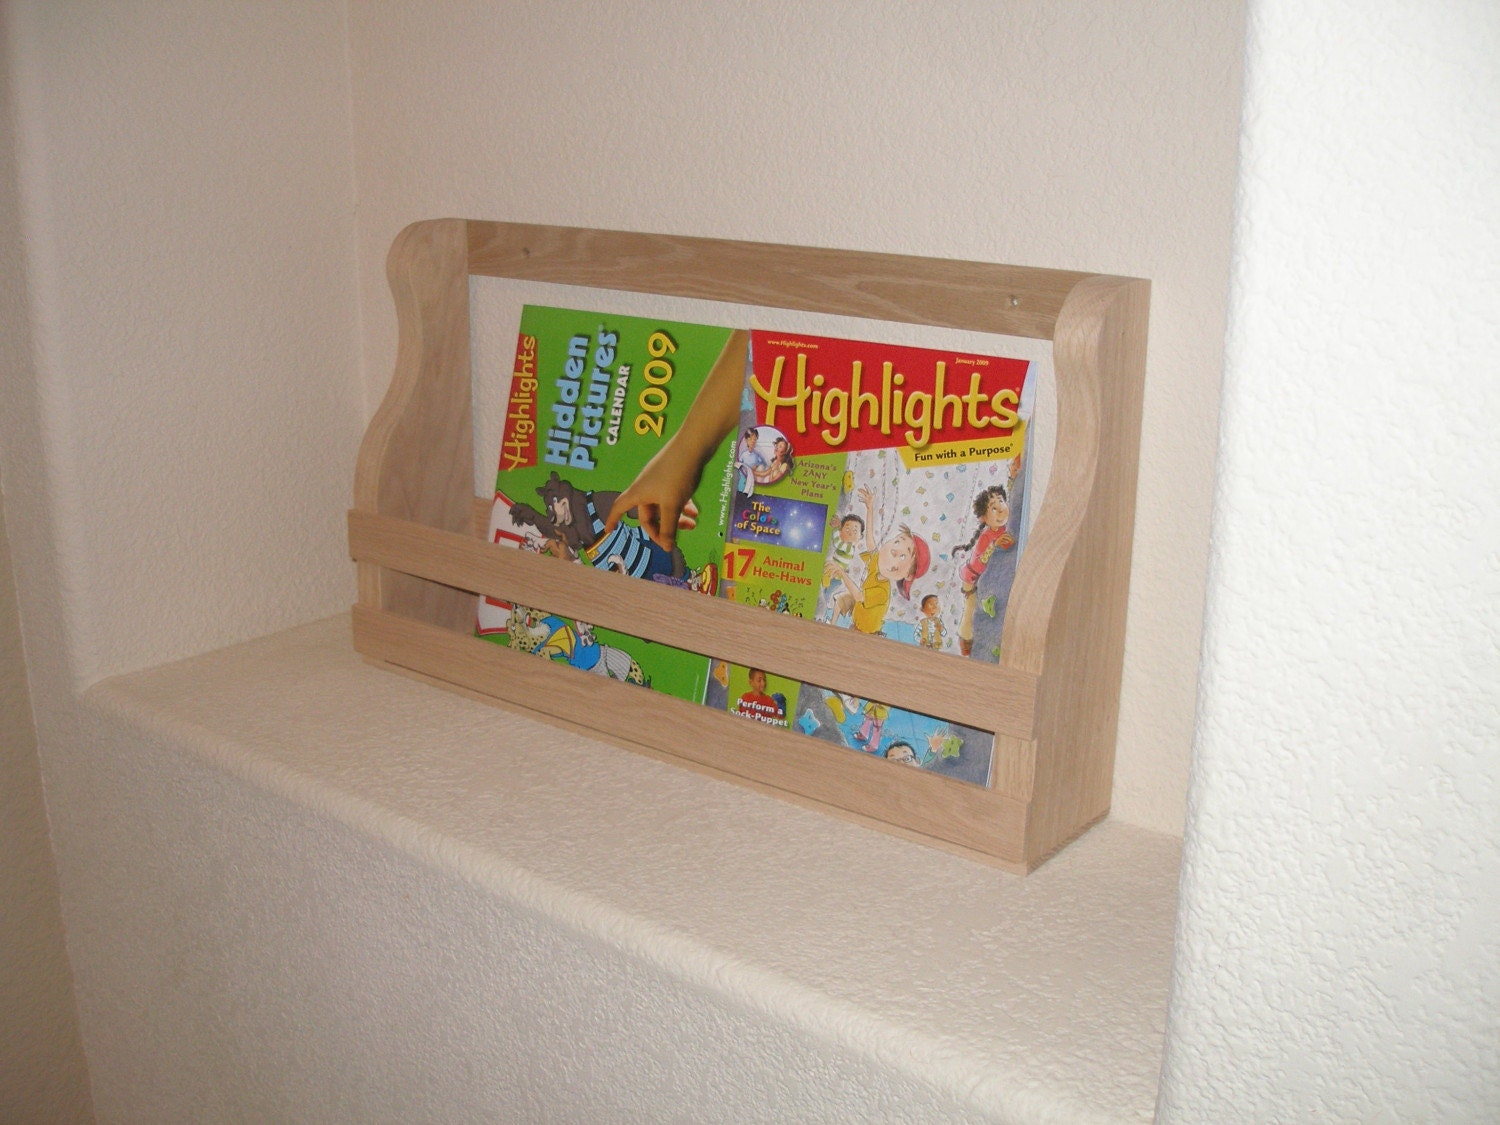 Book Rack Holder Shelf Wall Mount 23 Inches Long For Kids